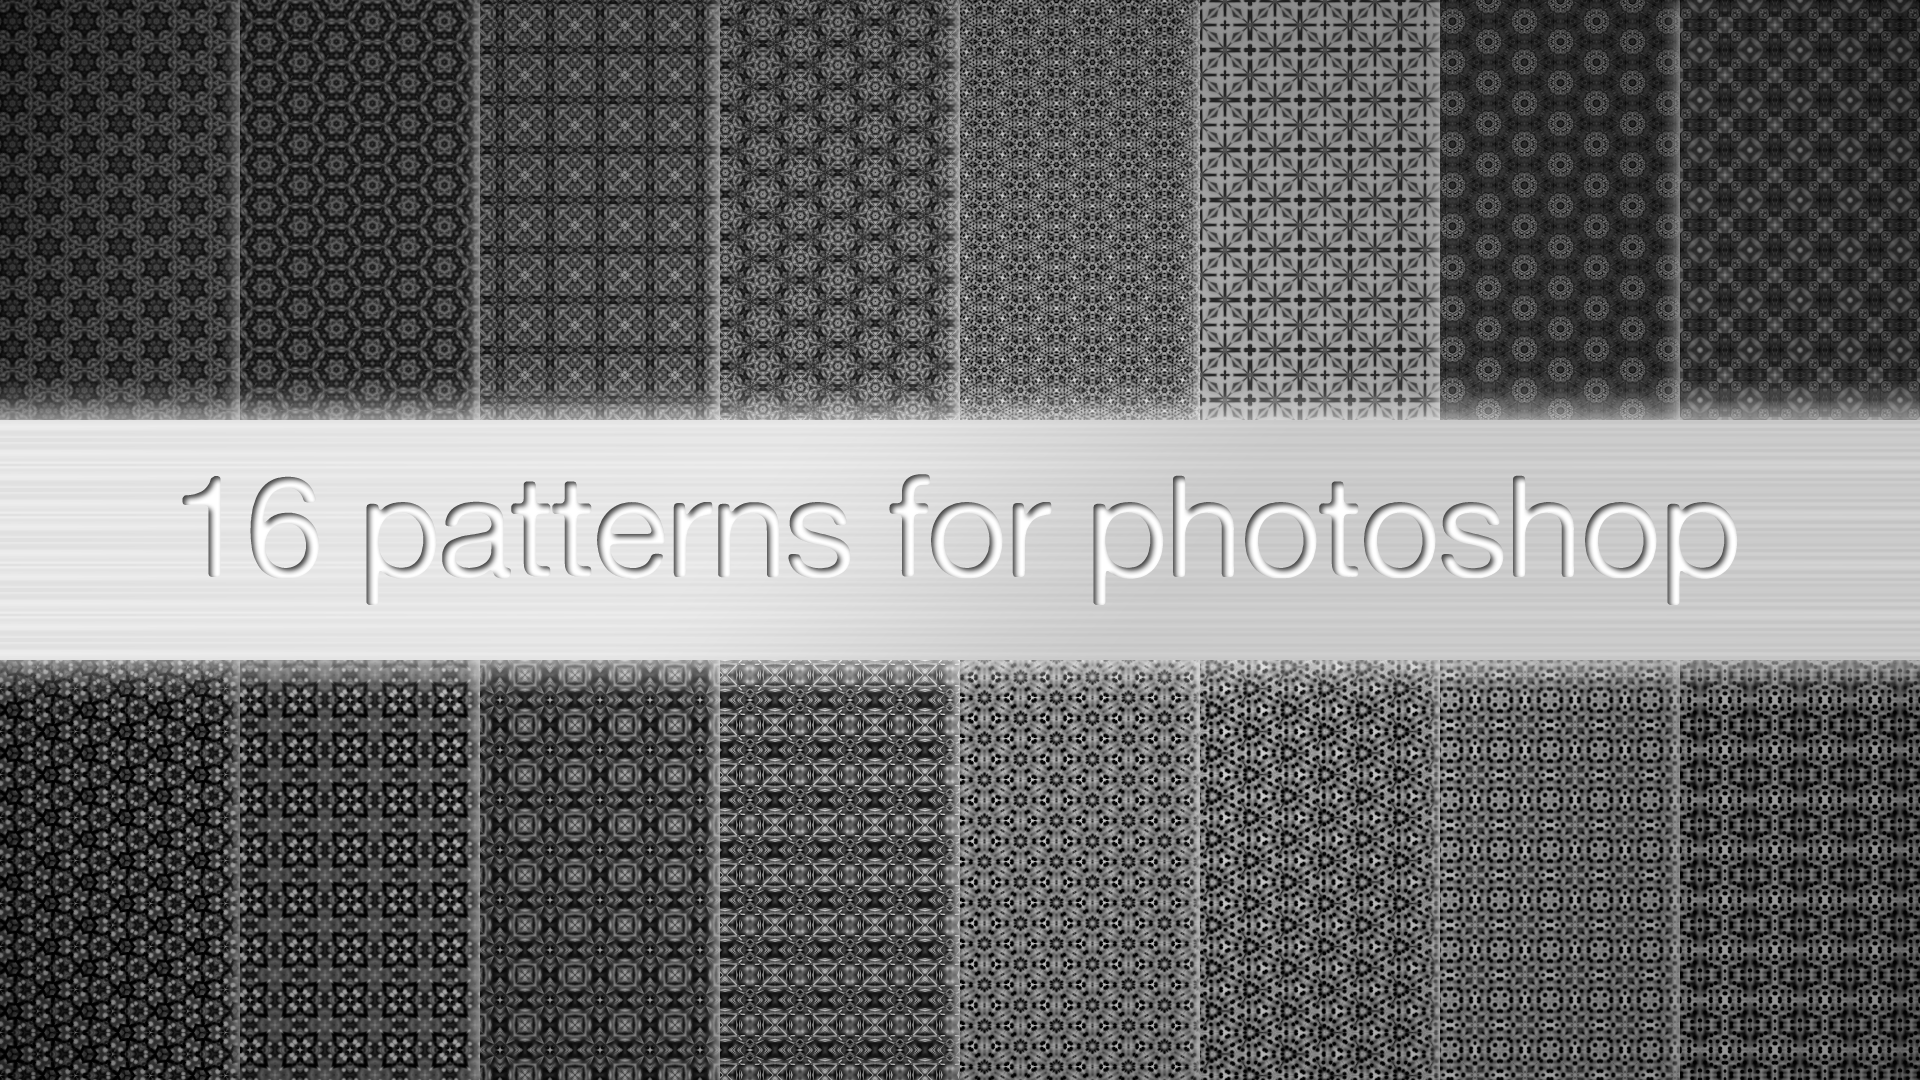 Excellent Photoshop Patterns Patterns For Photoshop By Gamekiller Darys